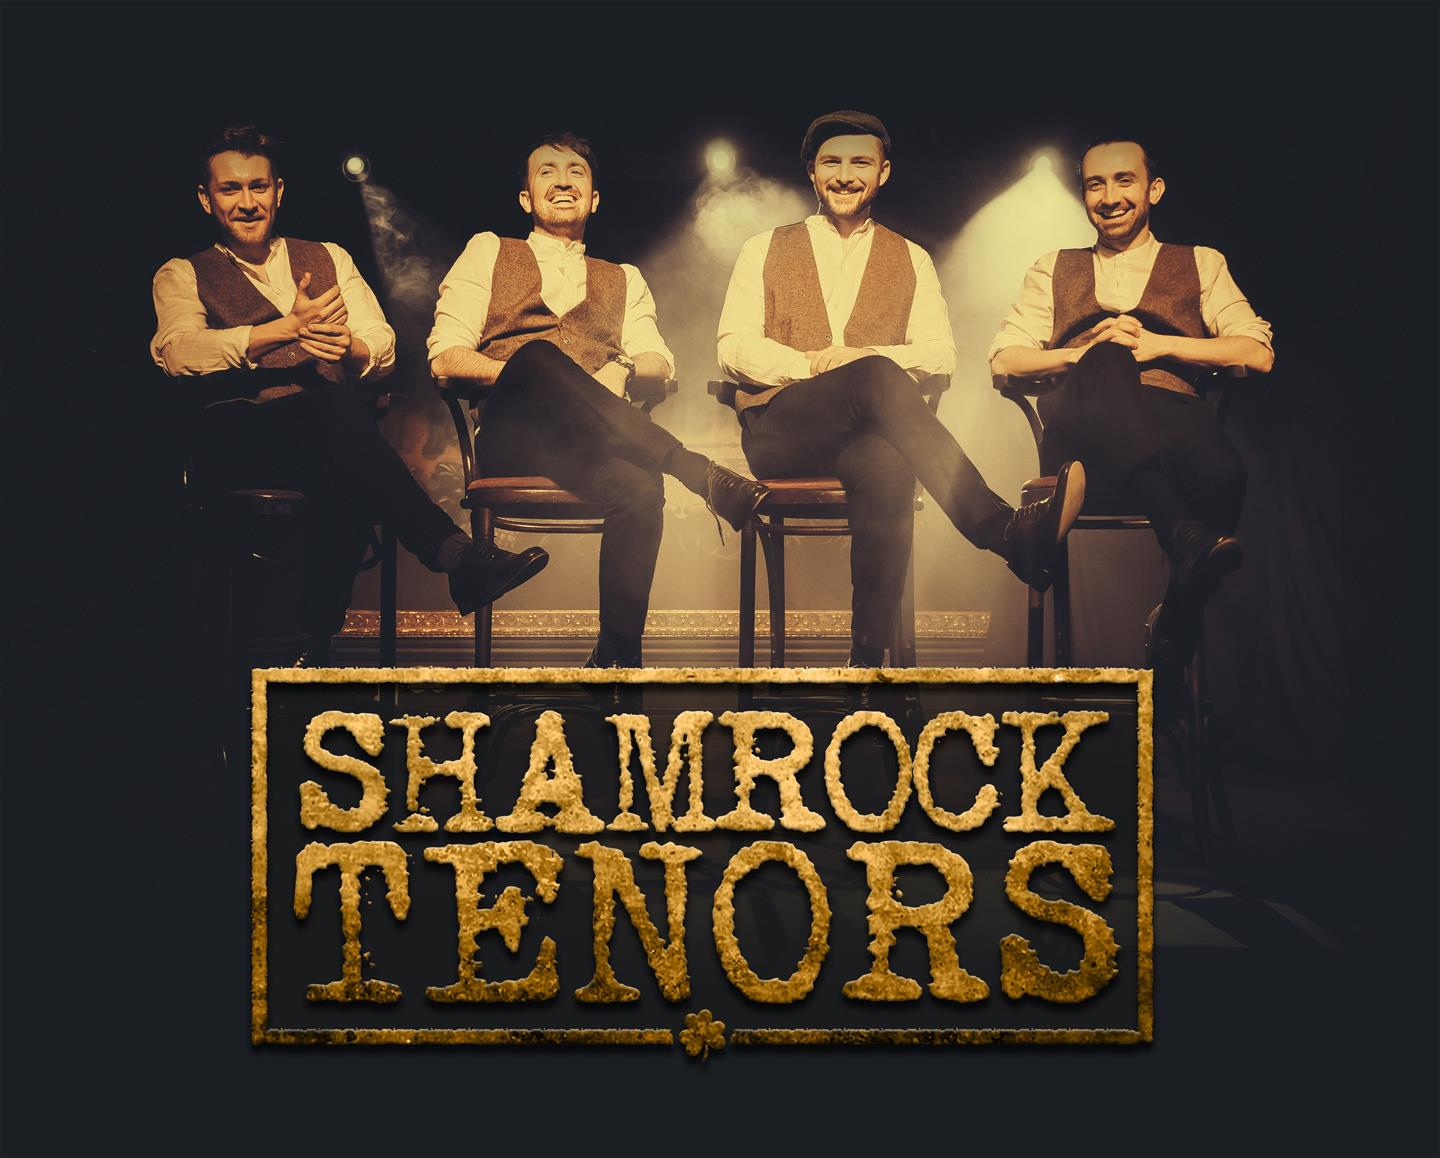 Shamrock Tenors - Ireland s Call